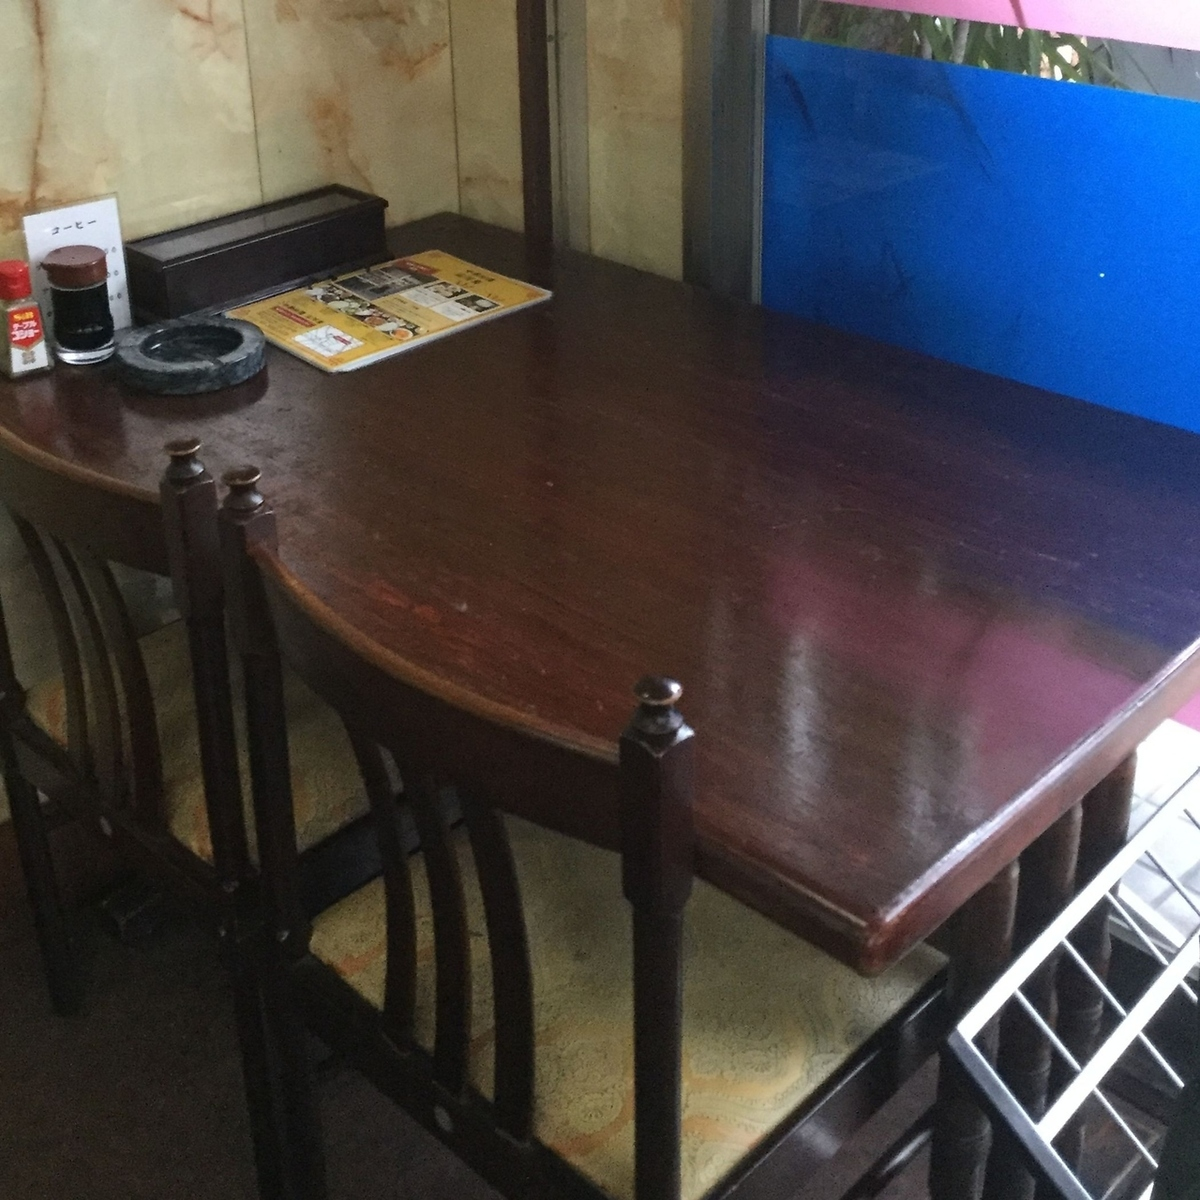 It is a table seat that can accommodate 1 or 2 people.I'd recommend it for crisp meals with only one meal or just meals.